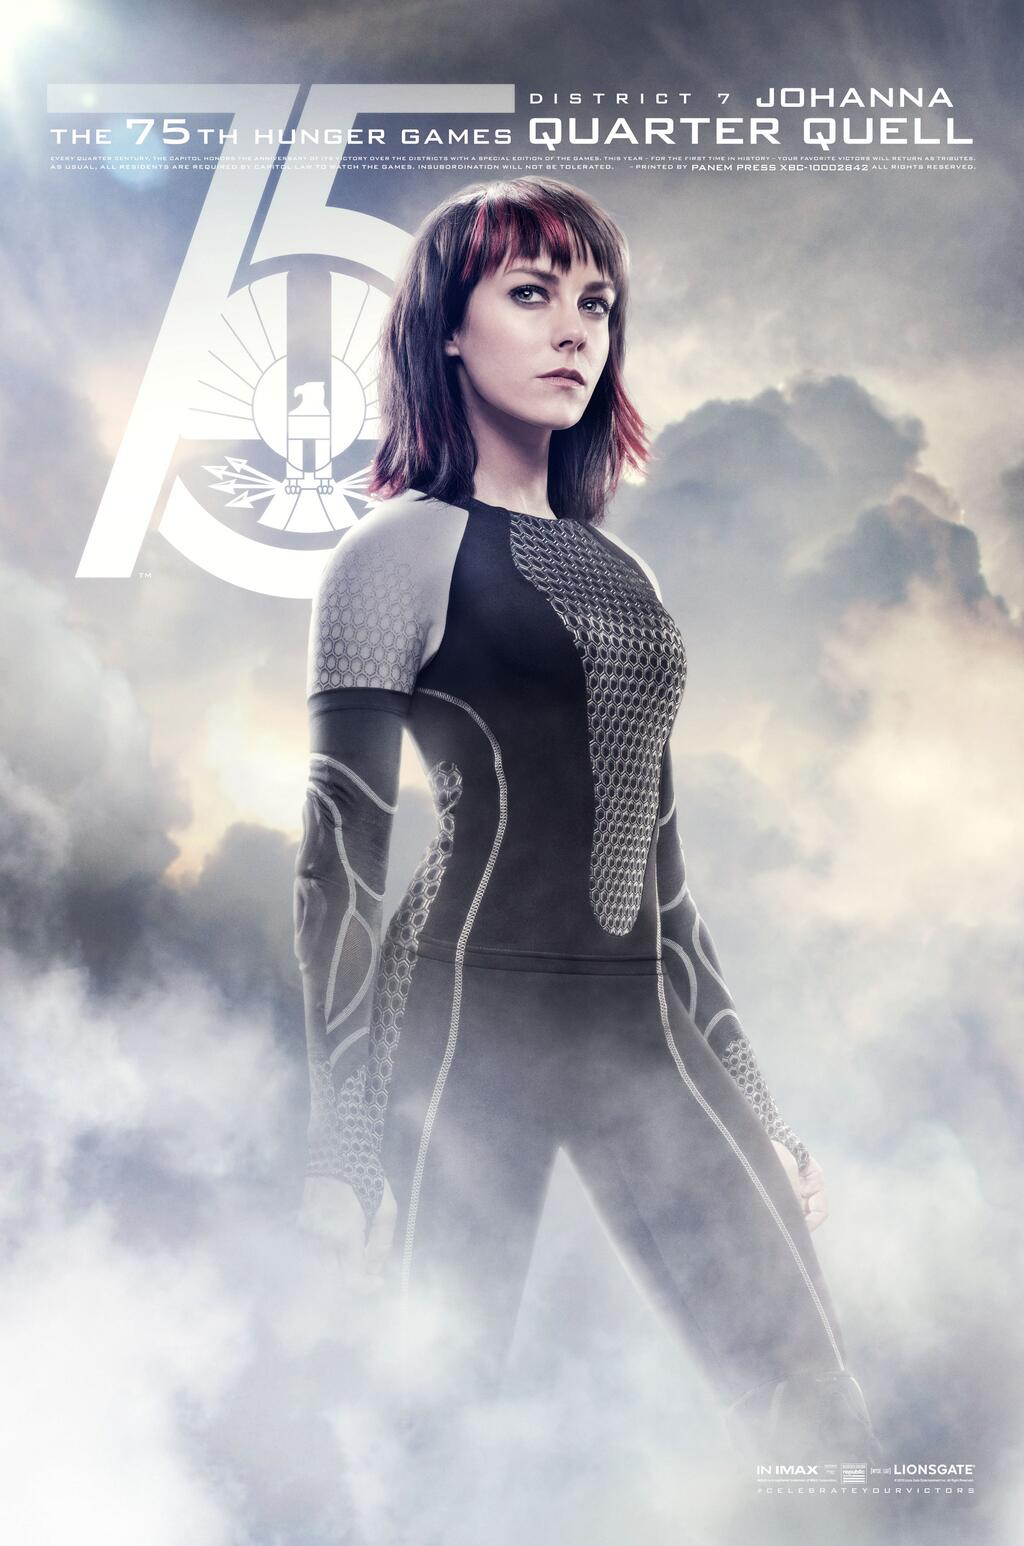 Jena Malone 75th Hunger Games Quarter Quell District 2 Johanna movie poster